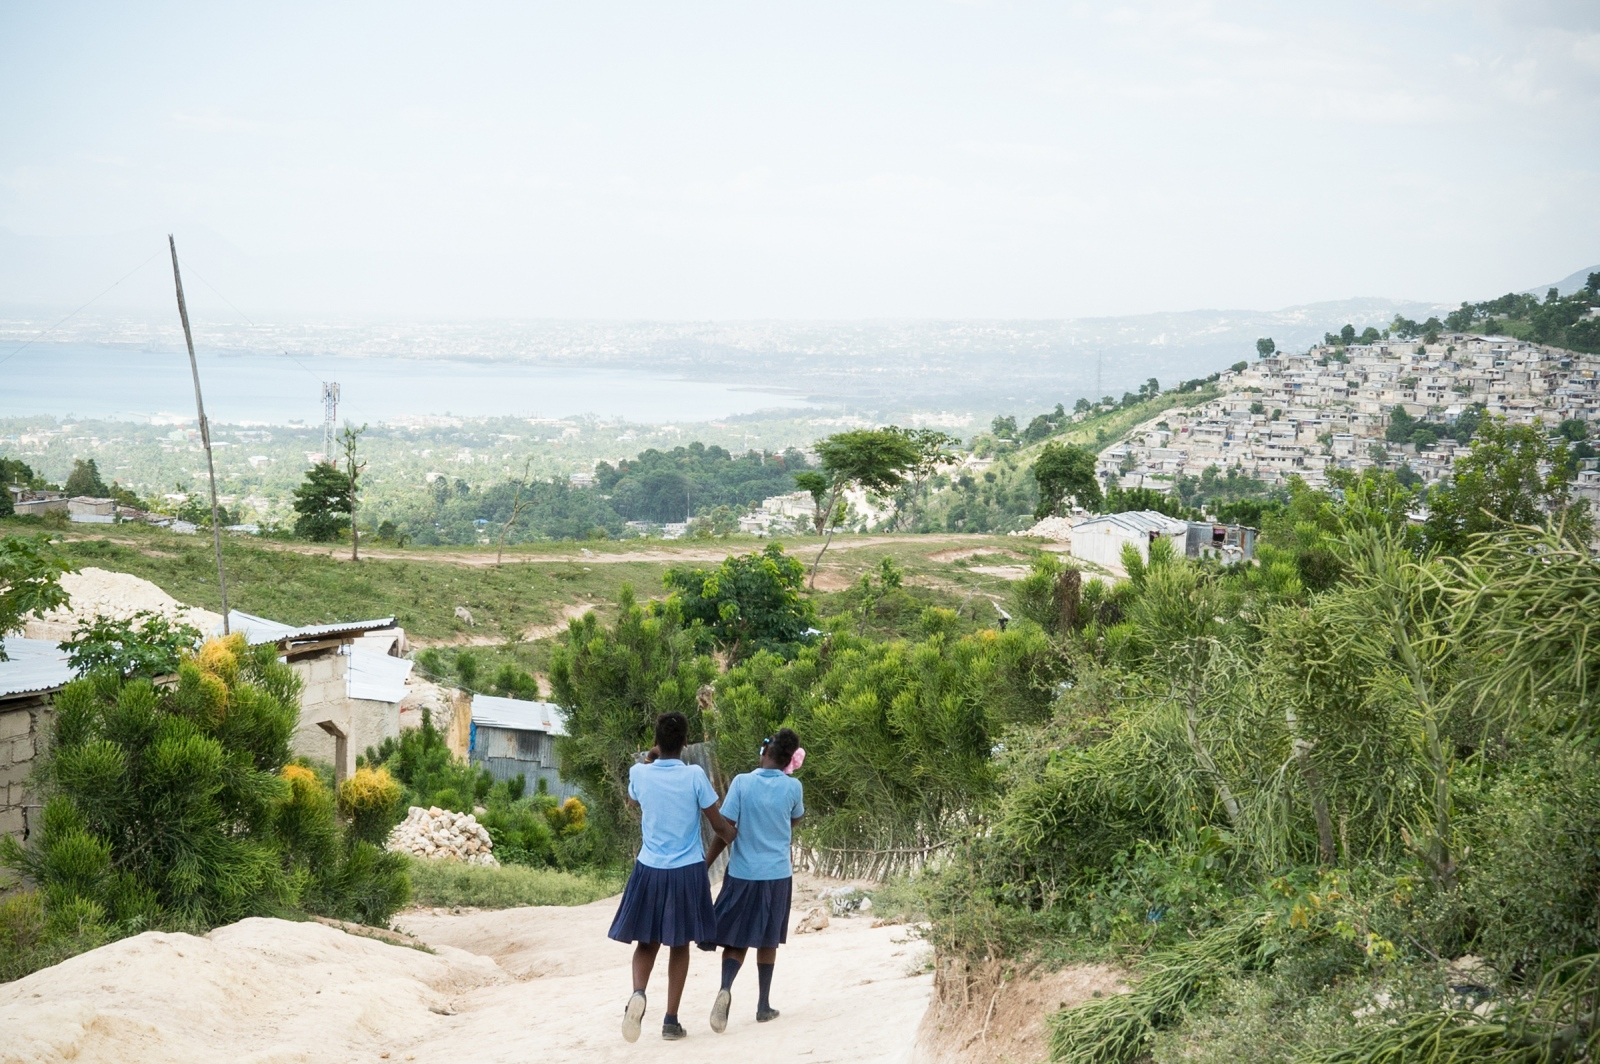 Faïka walks home with a friend after school. She is one of the 300 students - mostly current and former domestic children - of the Foyer Maurice Sixto school who attend class in the morning and learn a profession in the afternoon. The school's founding priest, Father Miguel Jean-Baptiste, opened its doors in 1989. His initiative tackled a staggering reality: a quarter of the children who live separated from their families don't go to school.